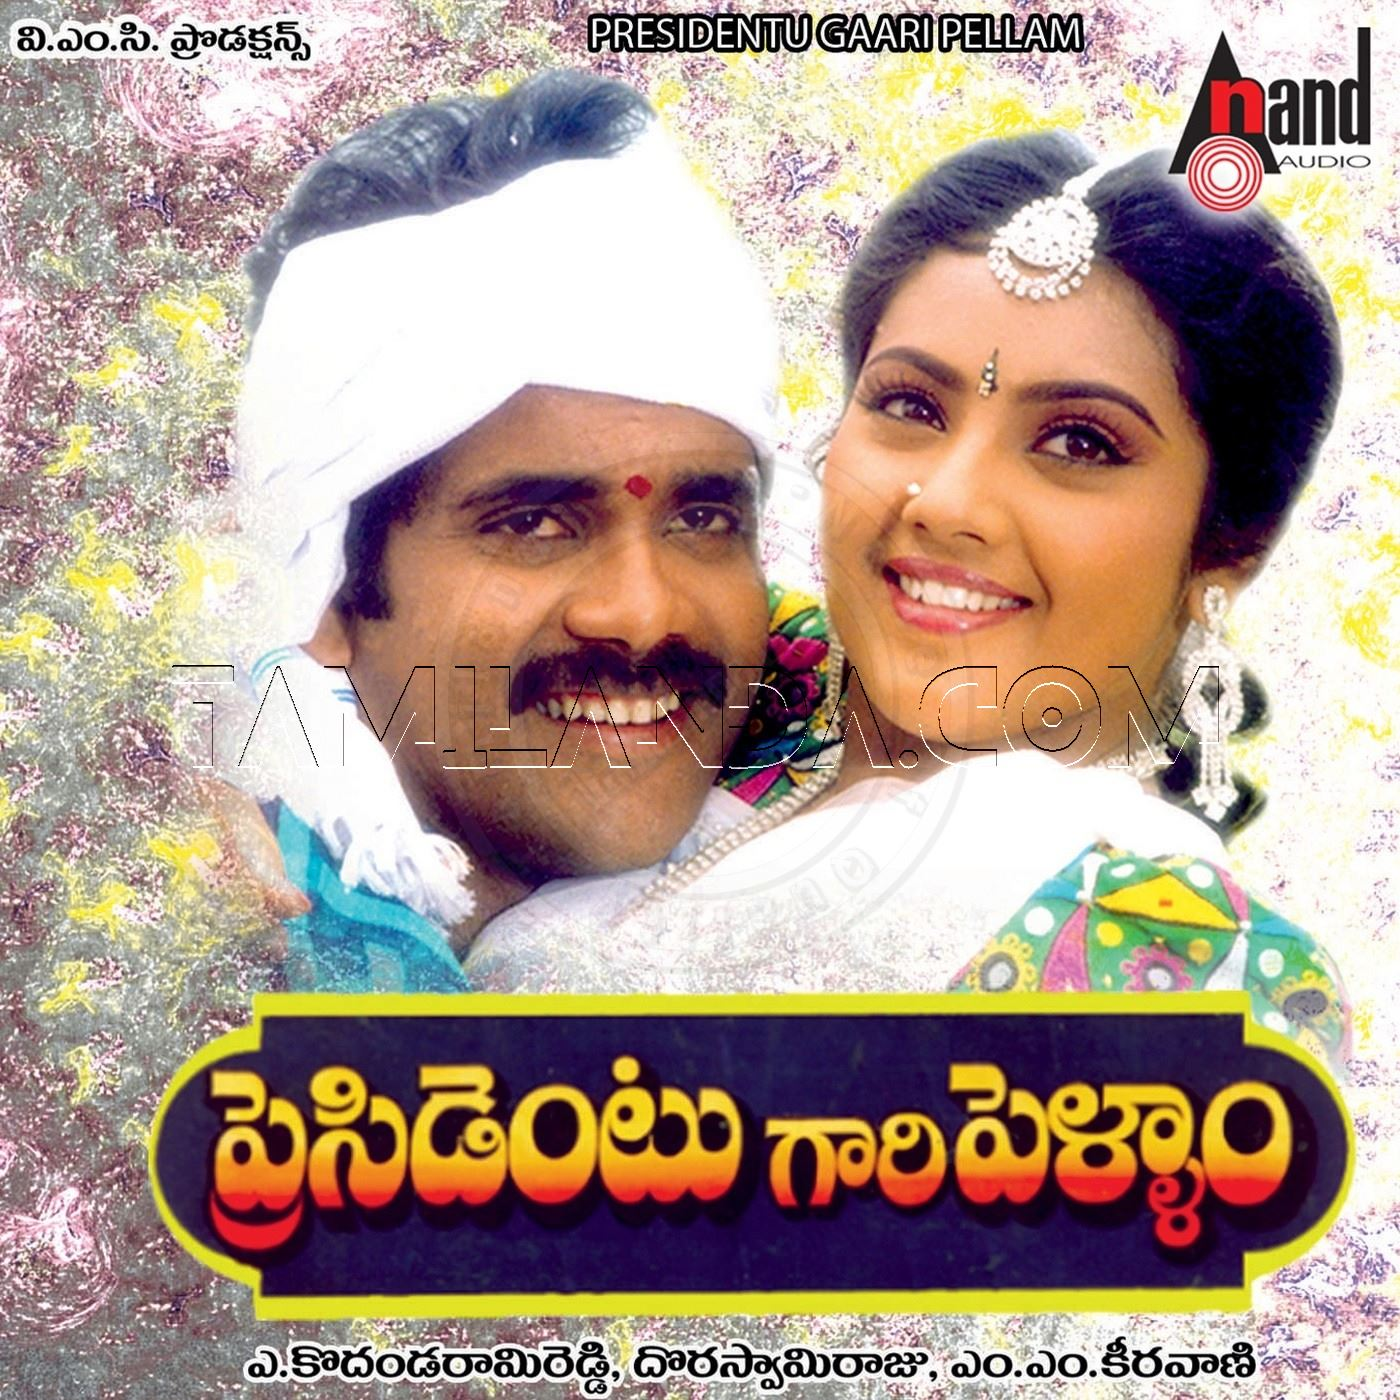 Presidentu Garipellam FLAC/WAV Songs